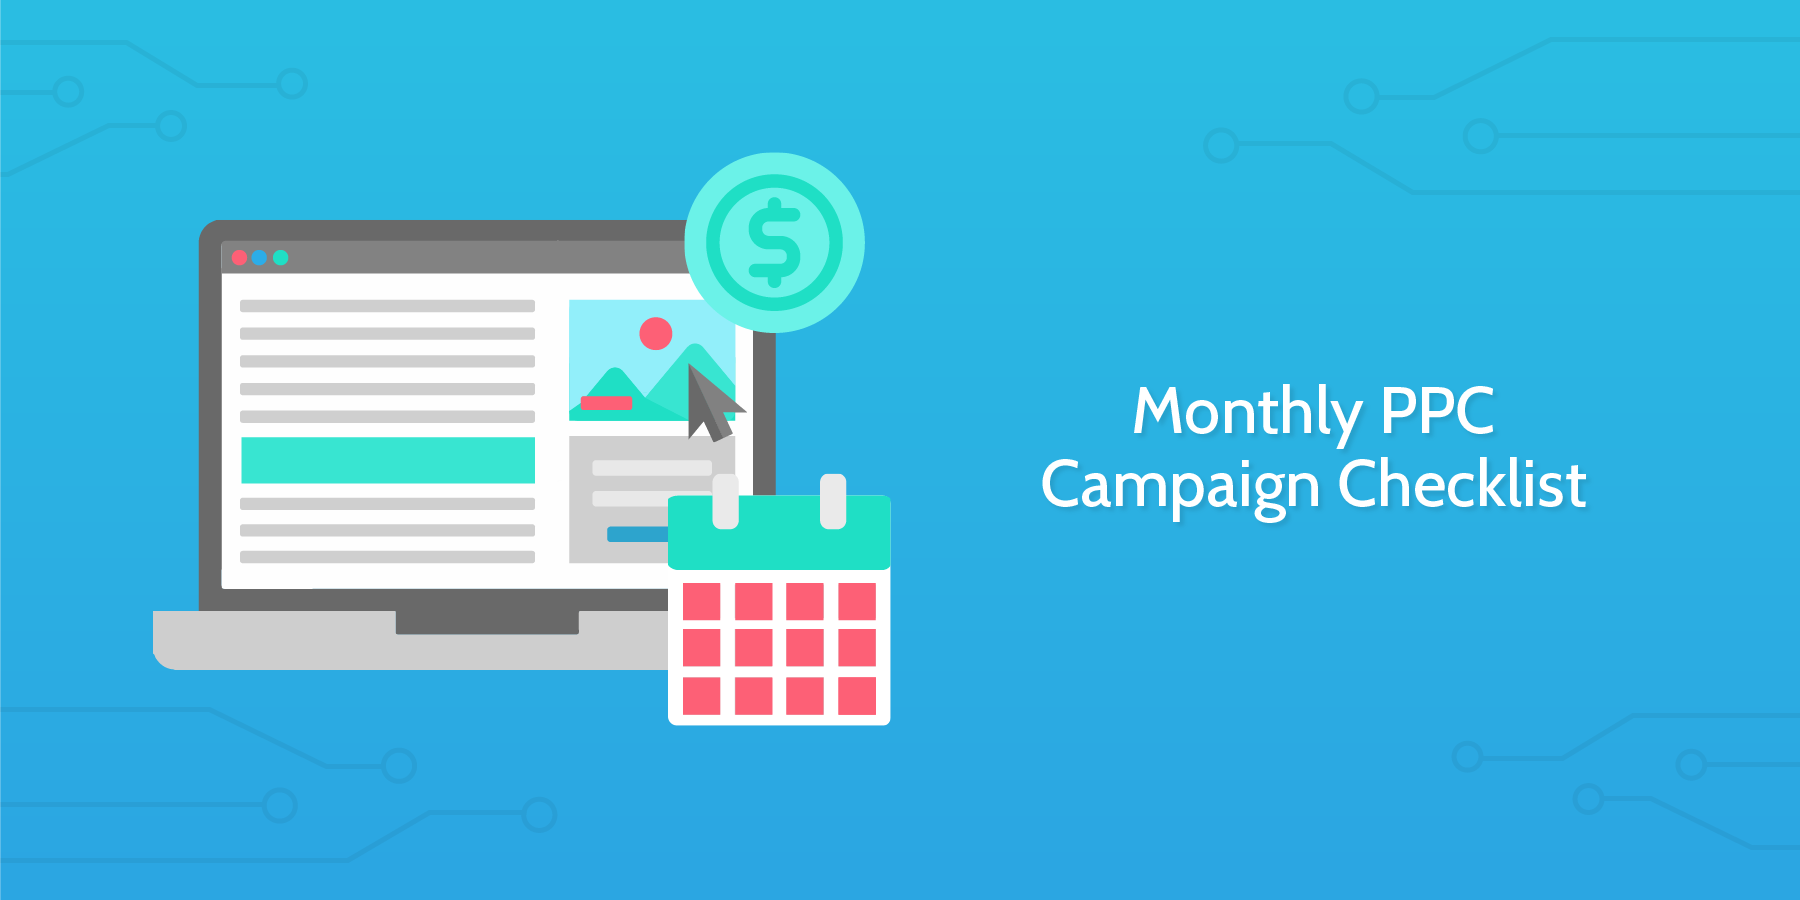 Monthly PPC Campaign Checklist